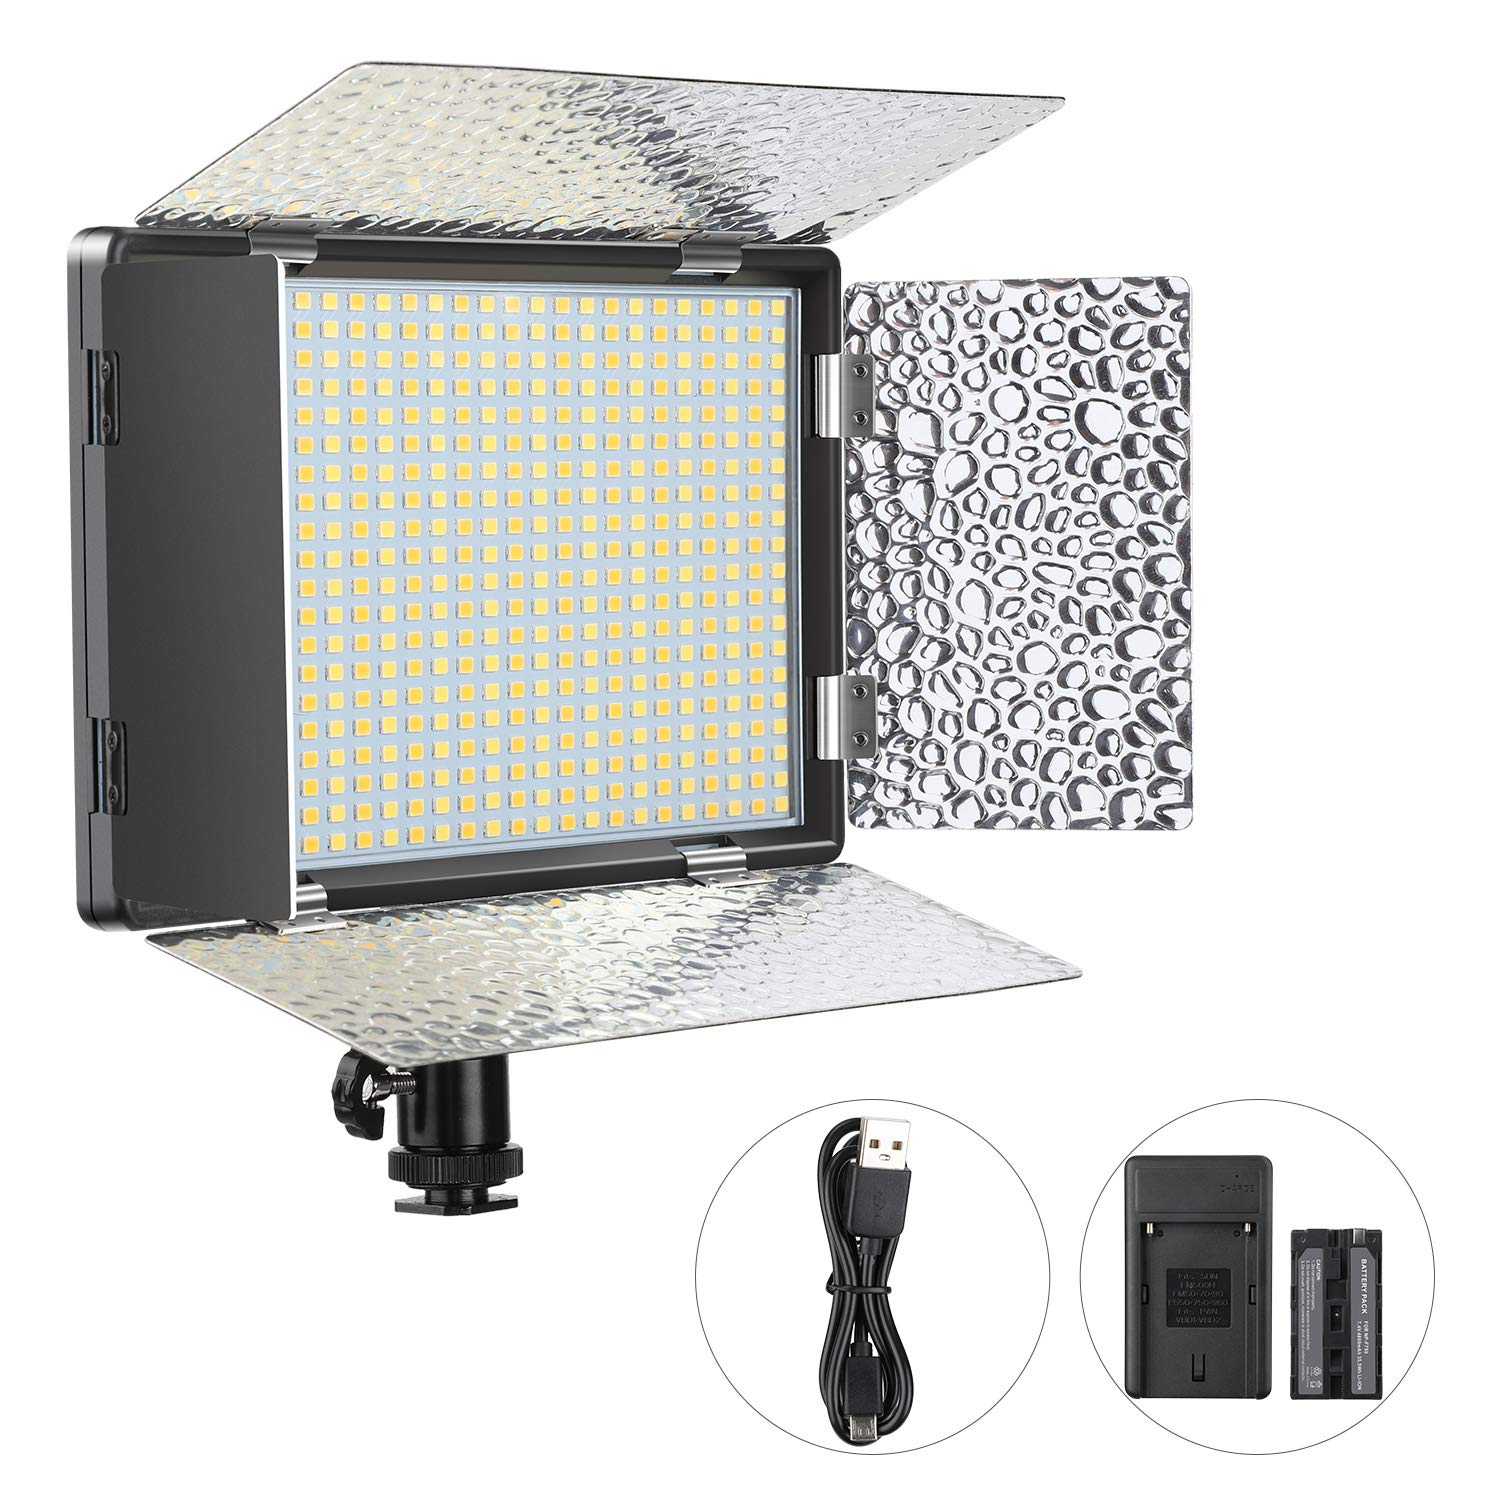 ENEGON Camera Dimmable Video Light Panel (Bi-Color 520 LED Beads) with 4000mAh Rechargeable Battery, Charger,hot Shoe for Canon Panasonic Nikon DSLR Cameras, Camcorder, Tripod, CRI95+, 3200K-5600K by ENEGON